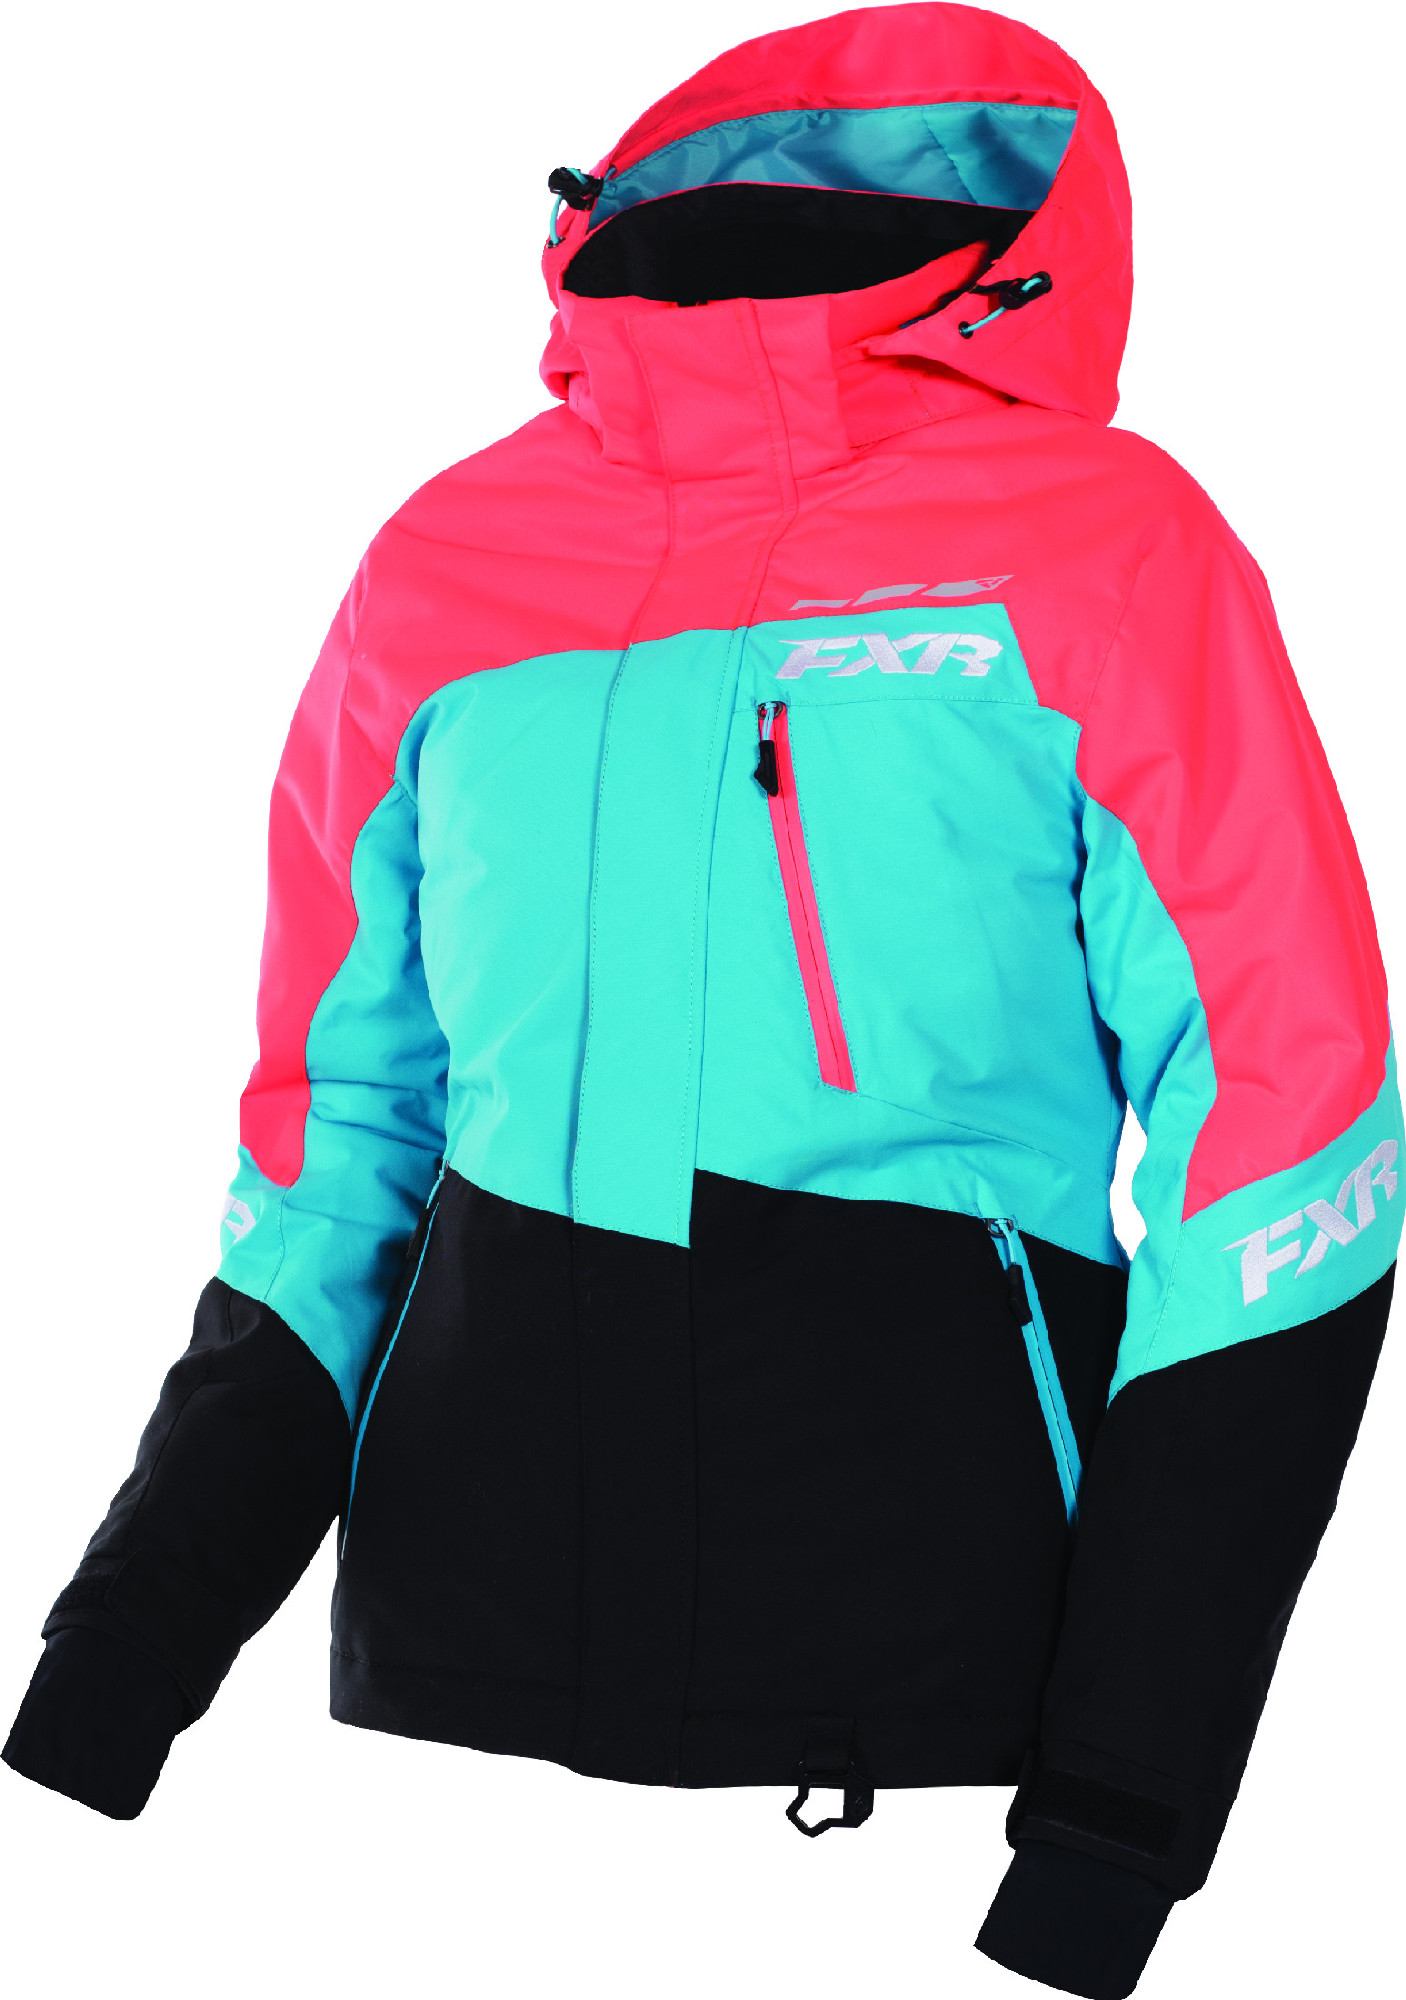 Womens Snowmobile Suits >> Details About Fxr Womens Electric Tangerine Aqua Black Fresh Snowmobile Jacket Insulated